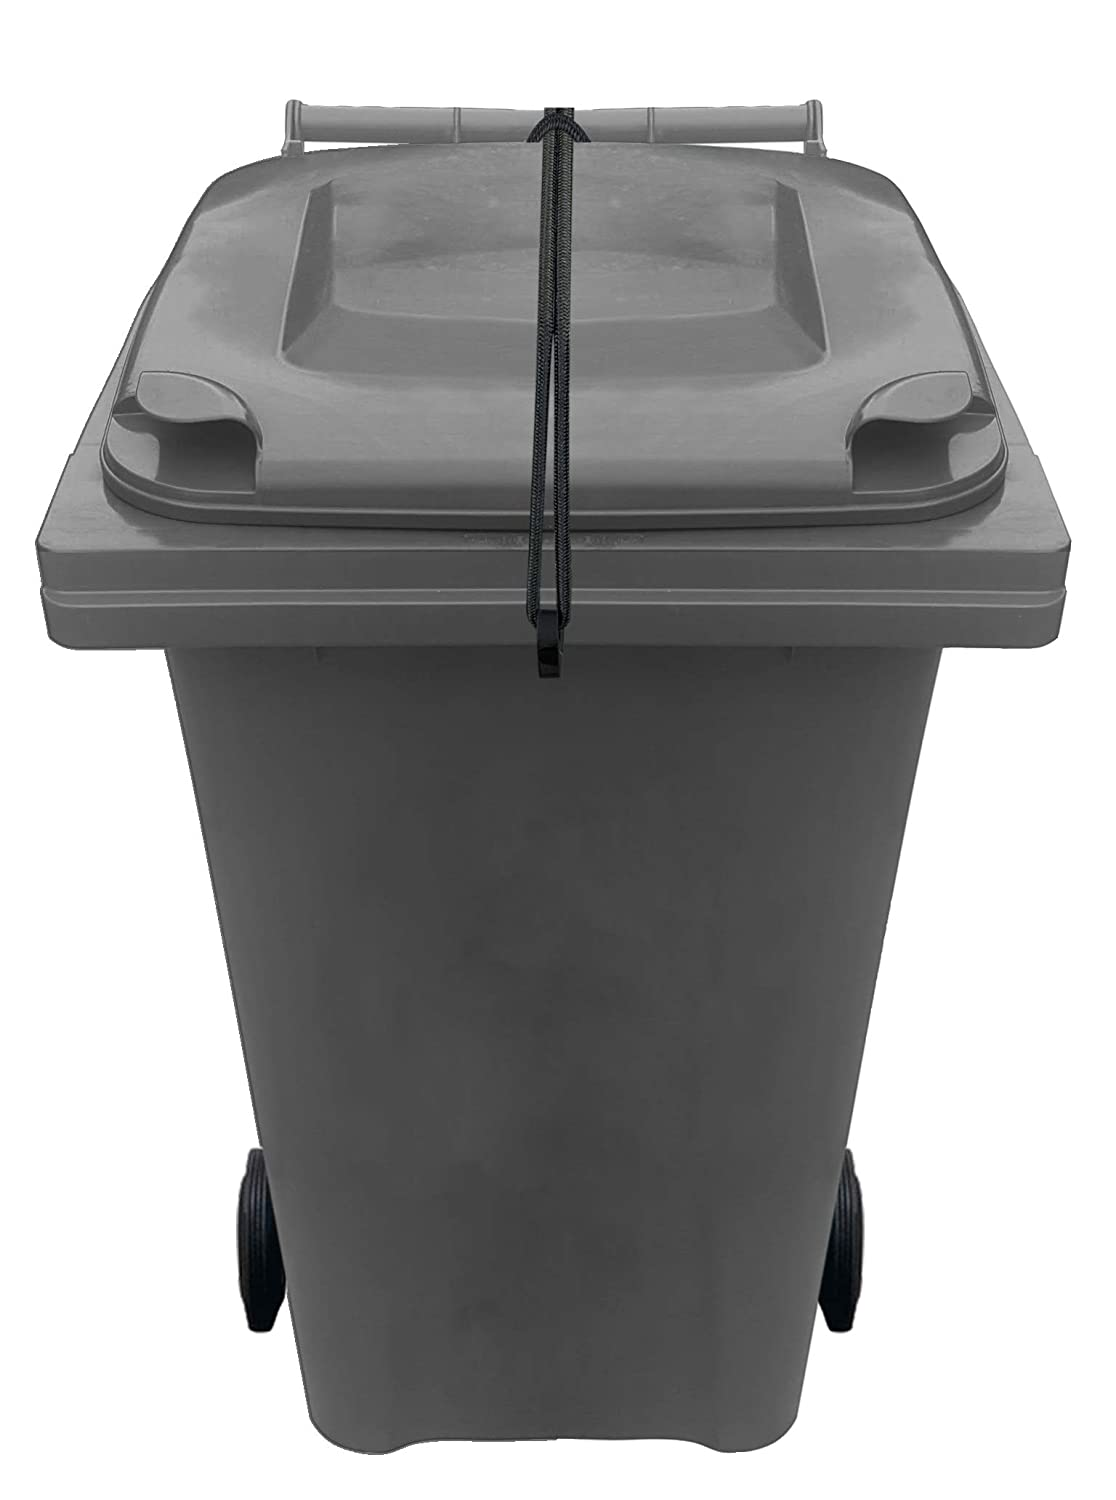 Wheelie Bin Lid Strap Lock - No Drilling - Secure Contents From Spilling - Stop Wind or Vandals Tipping - Easy Fitting - (dual bin pack) Easylife Tools